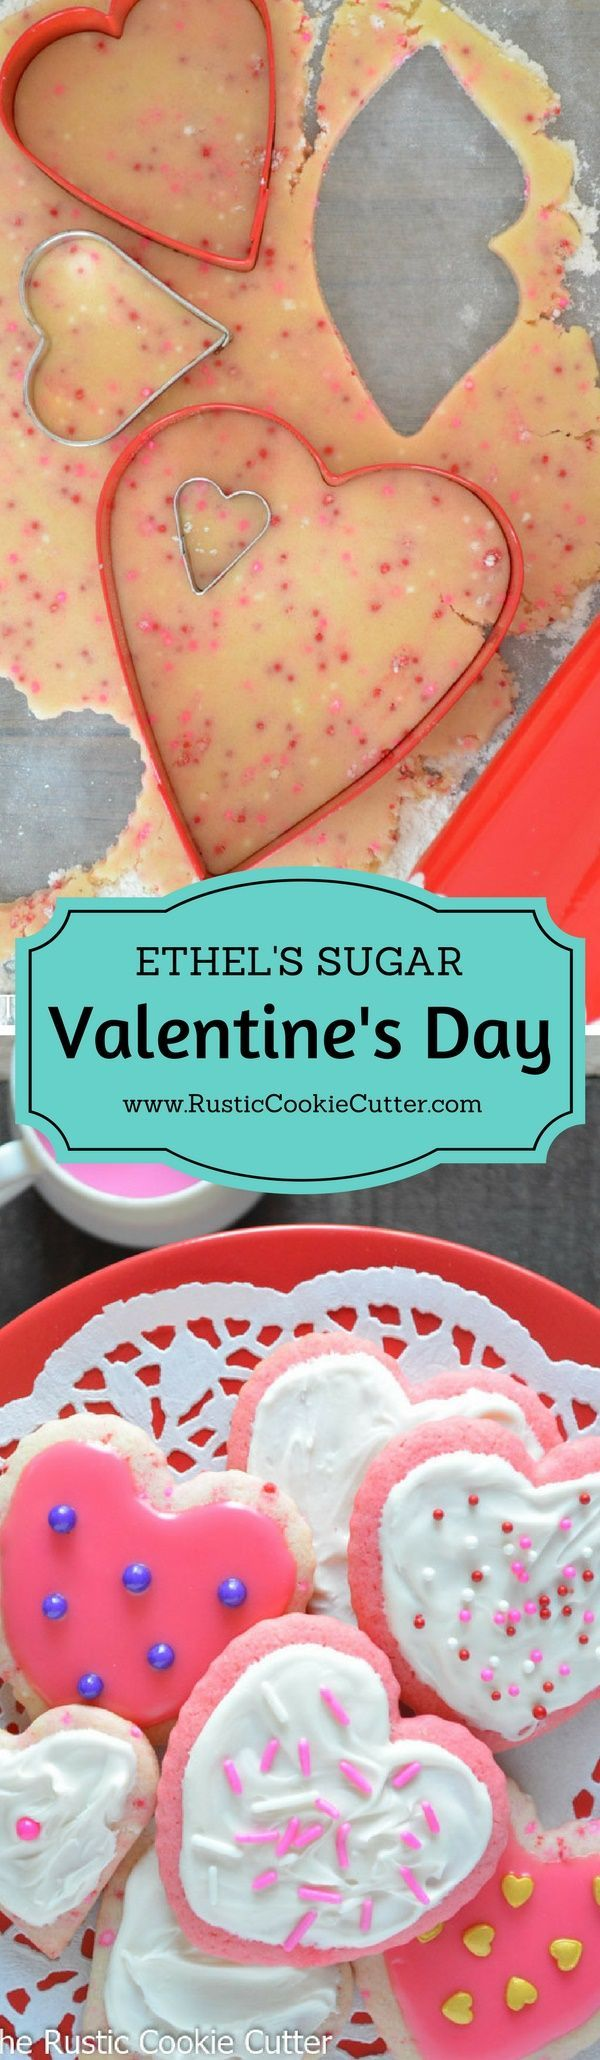 Valentine's Day Cutout Sugar Cookies by Ethel - The best sugar cookie recipe EVER!